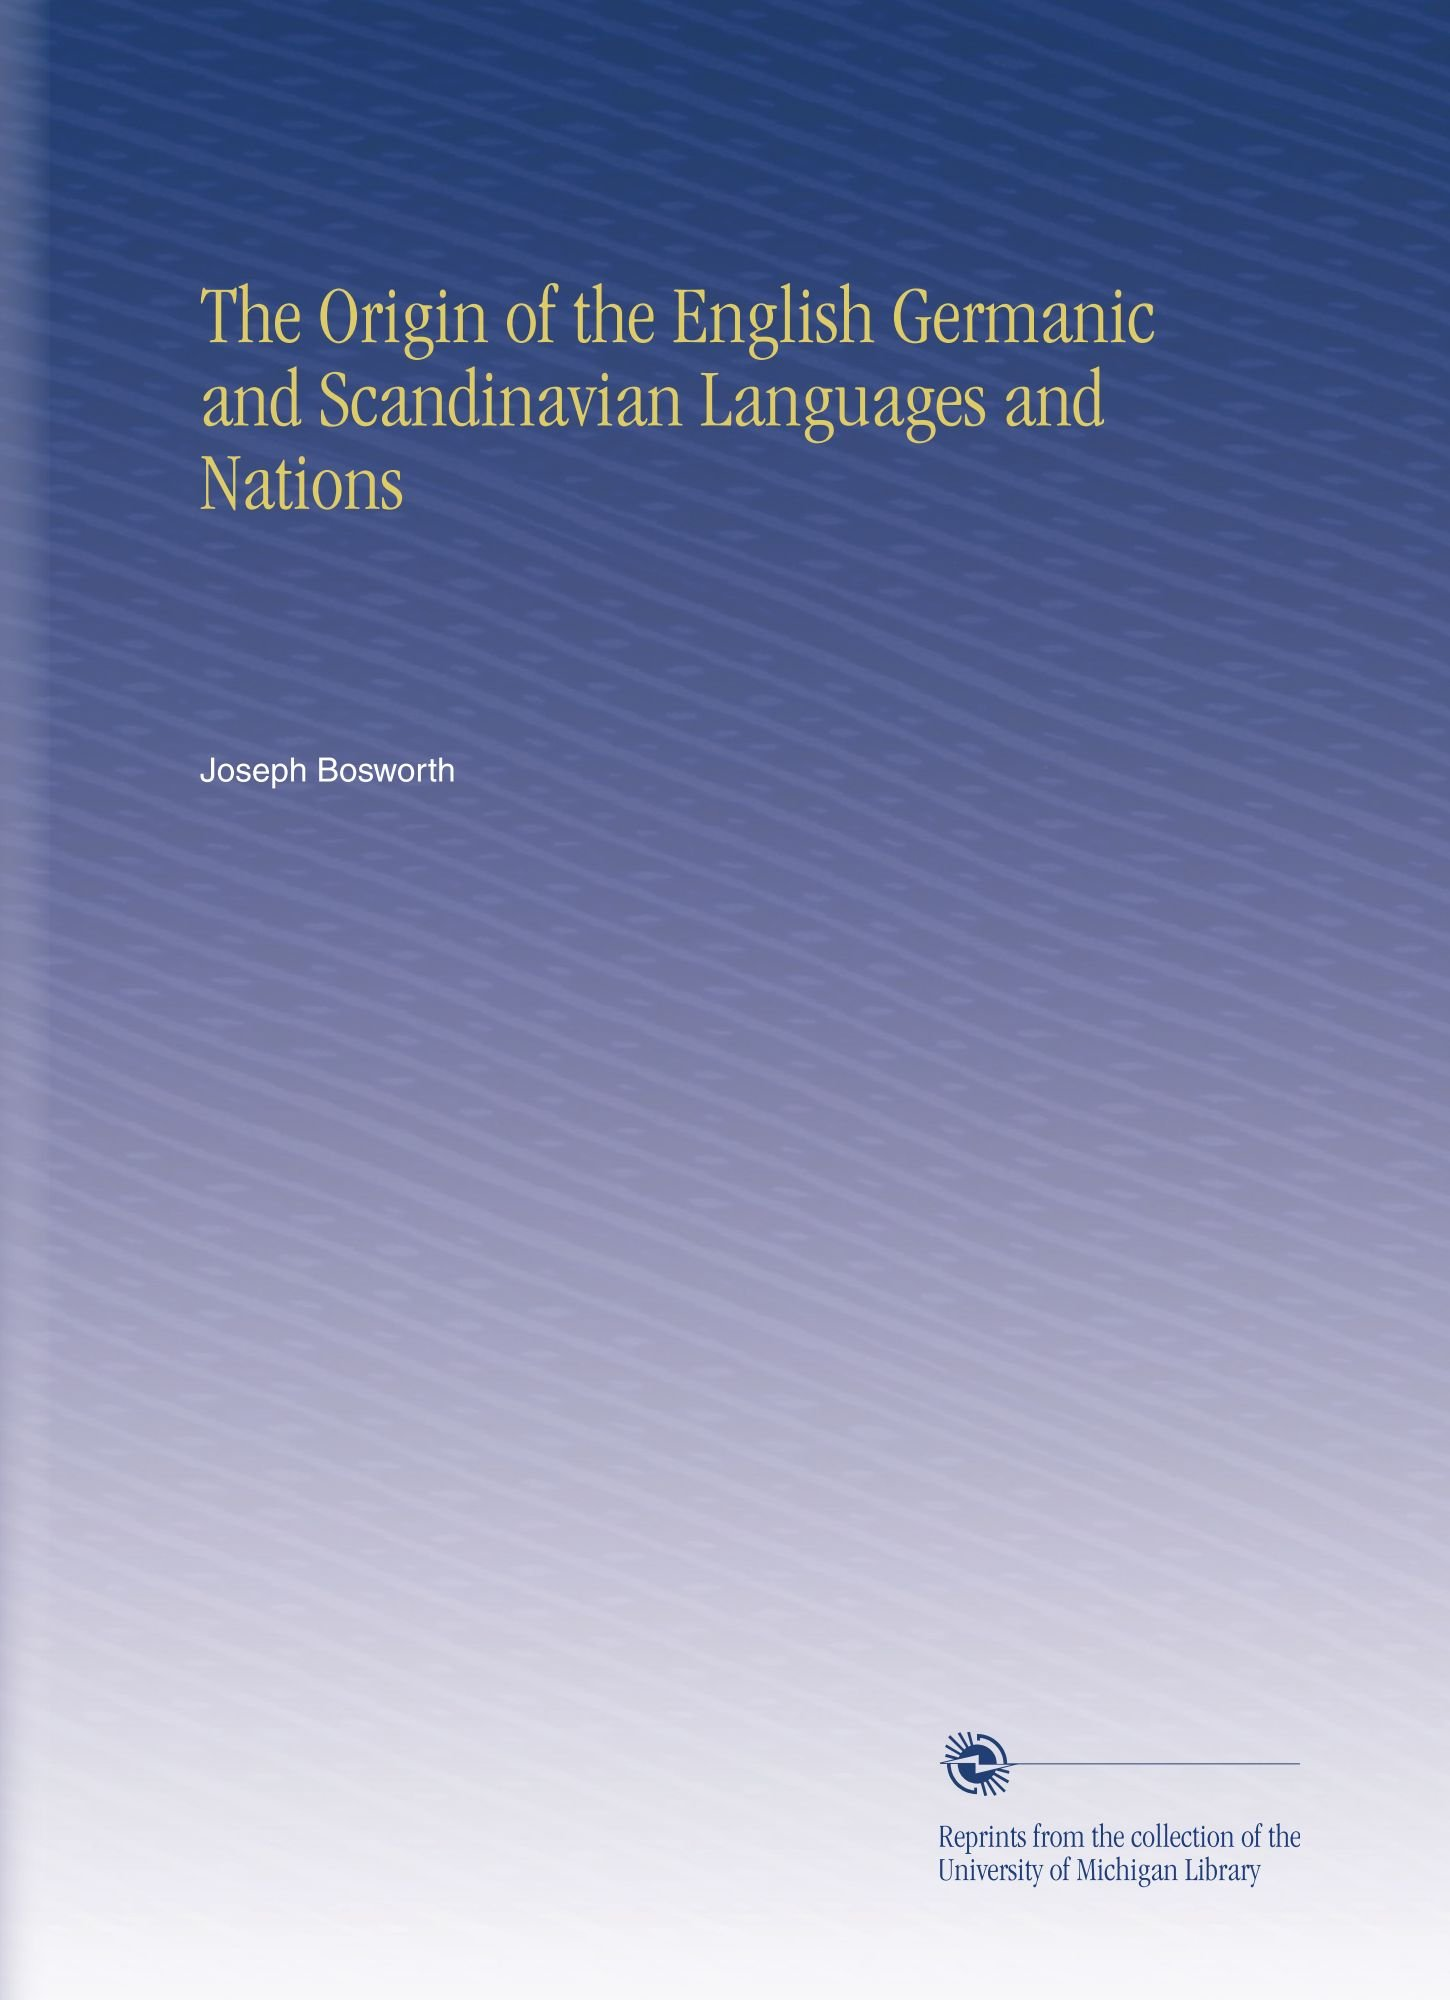 Download The Origin of the English Germanic and Scandinavian Languages and Nations ebook